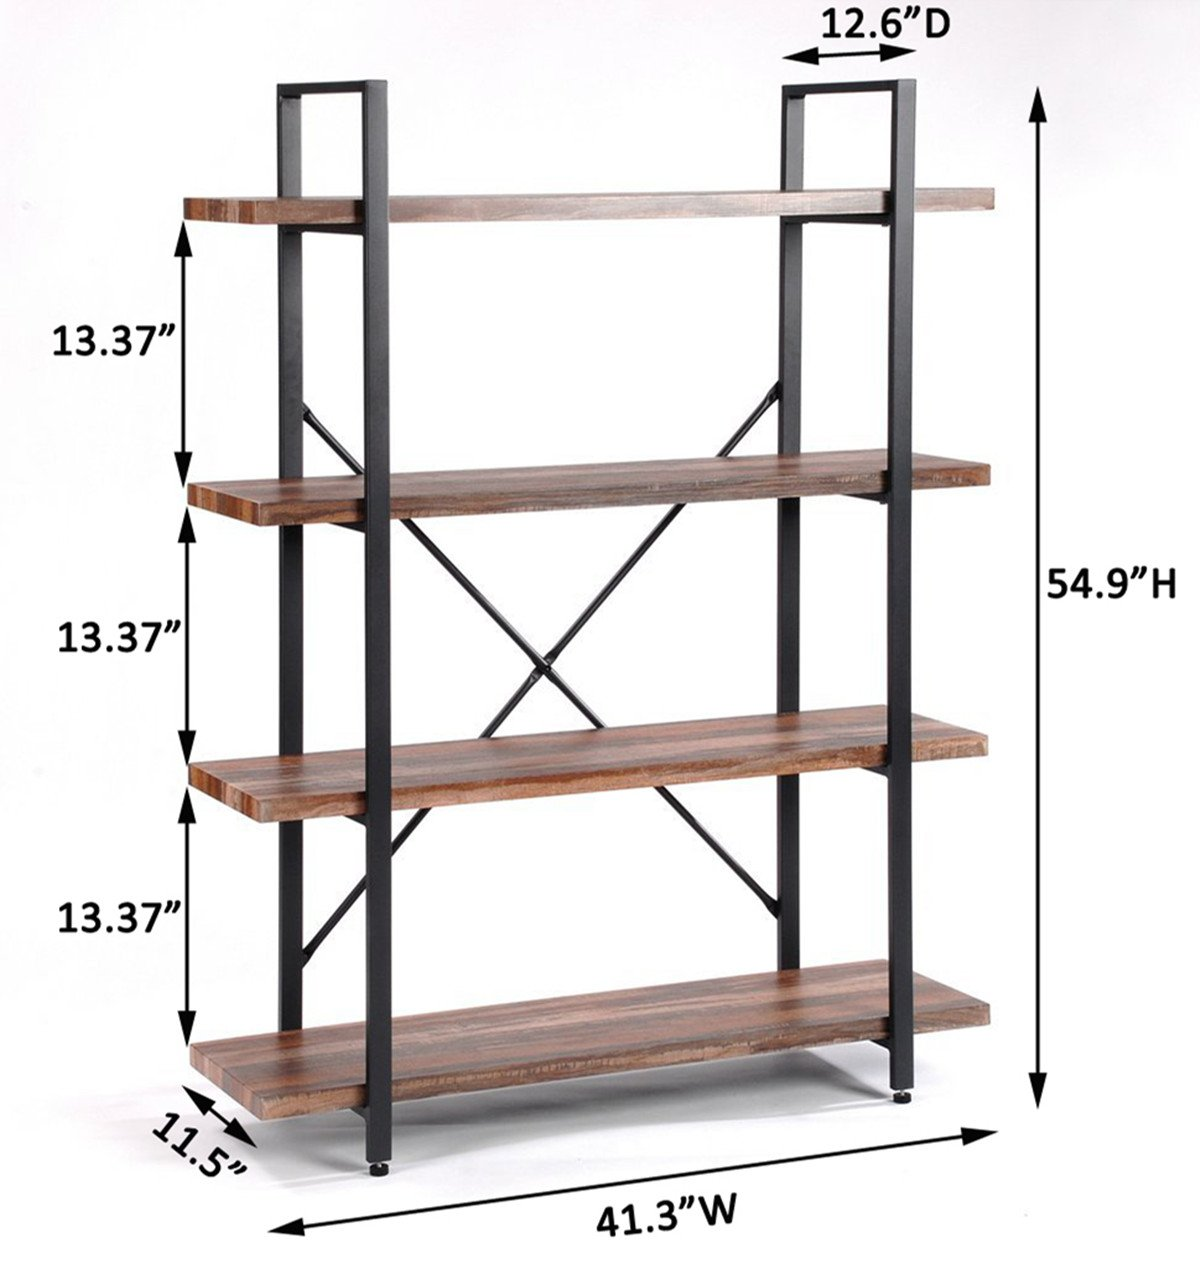 O&K Furniture 4 Tier Bookcases and Book Shelves, Industrial Vintage Metal and Wood Bookcases Furniture by O&K Furniture (Image #2)